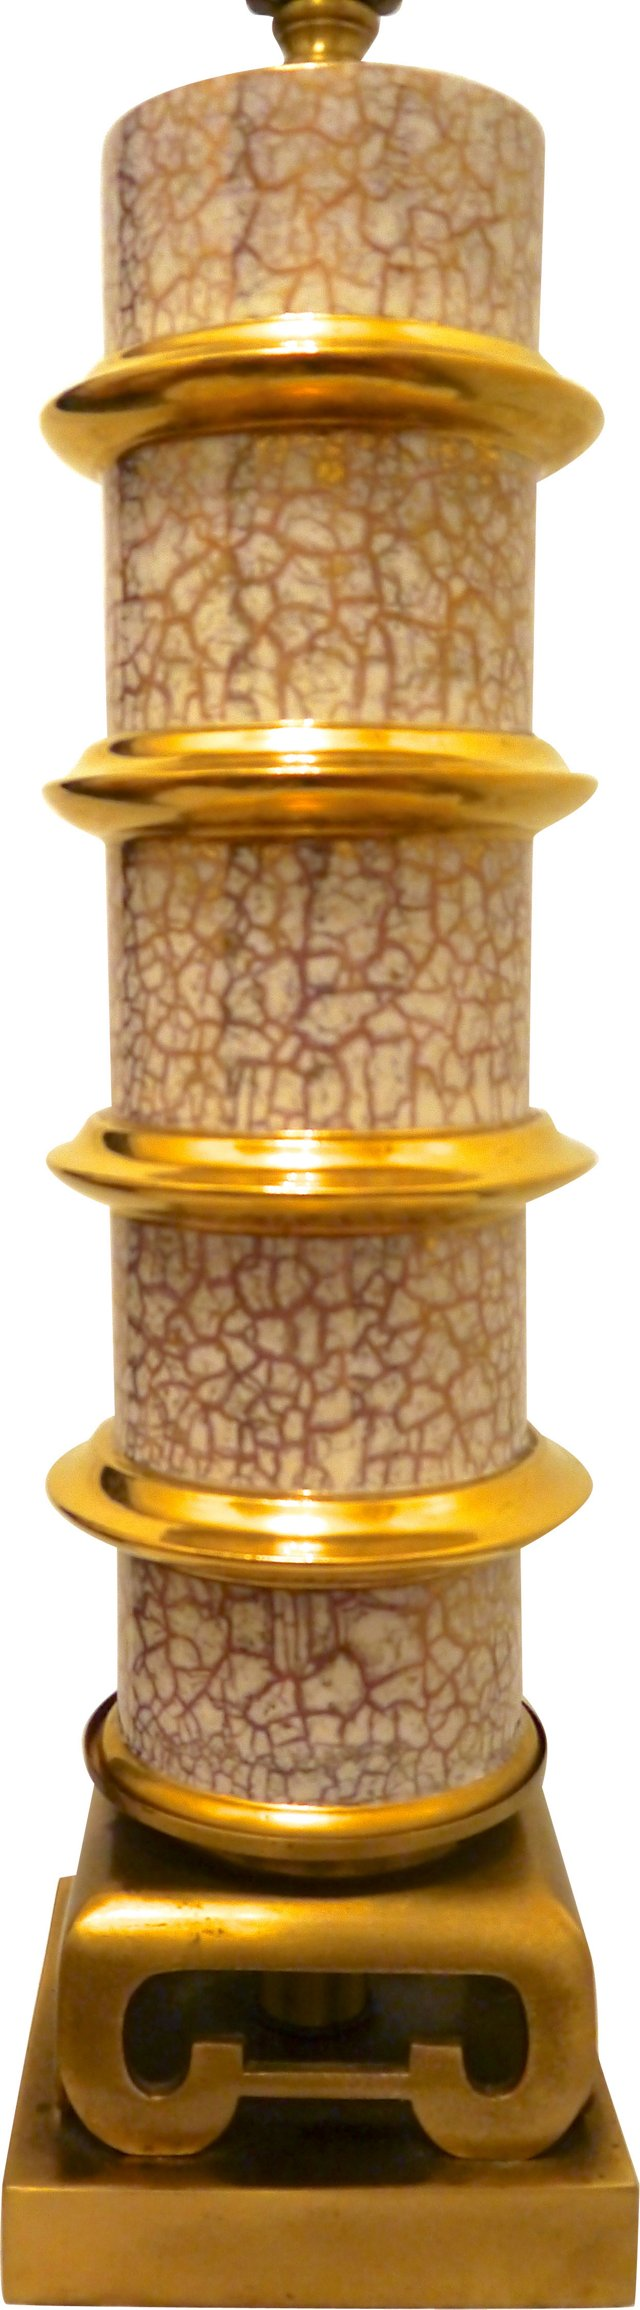 Brass & Gold Pagoda-Style Lamp